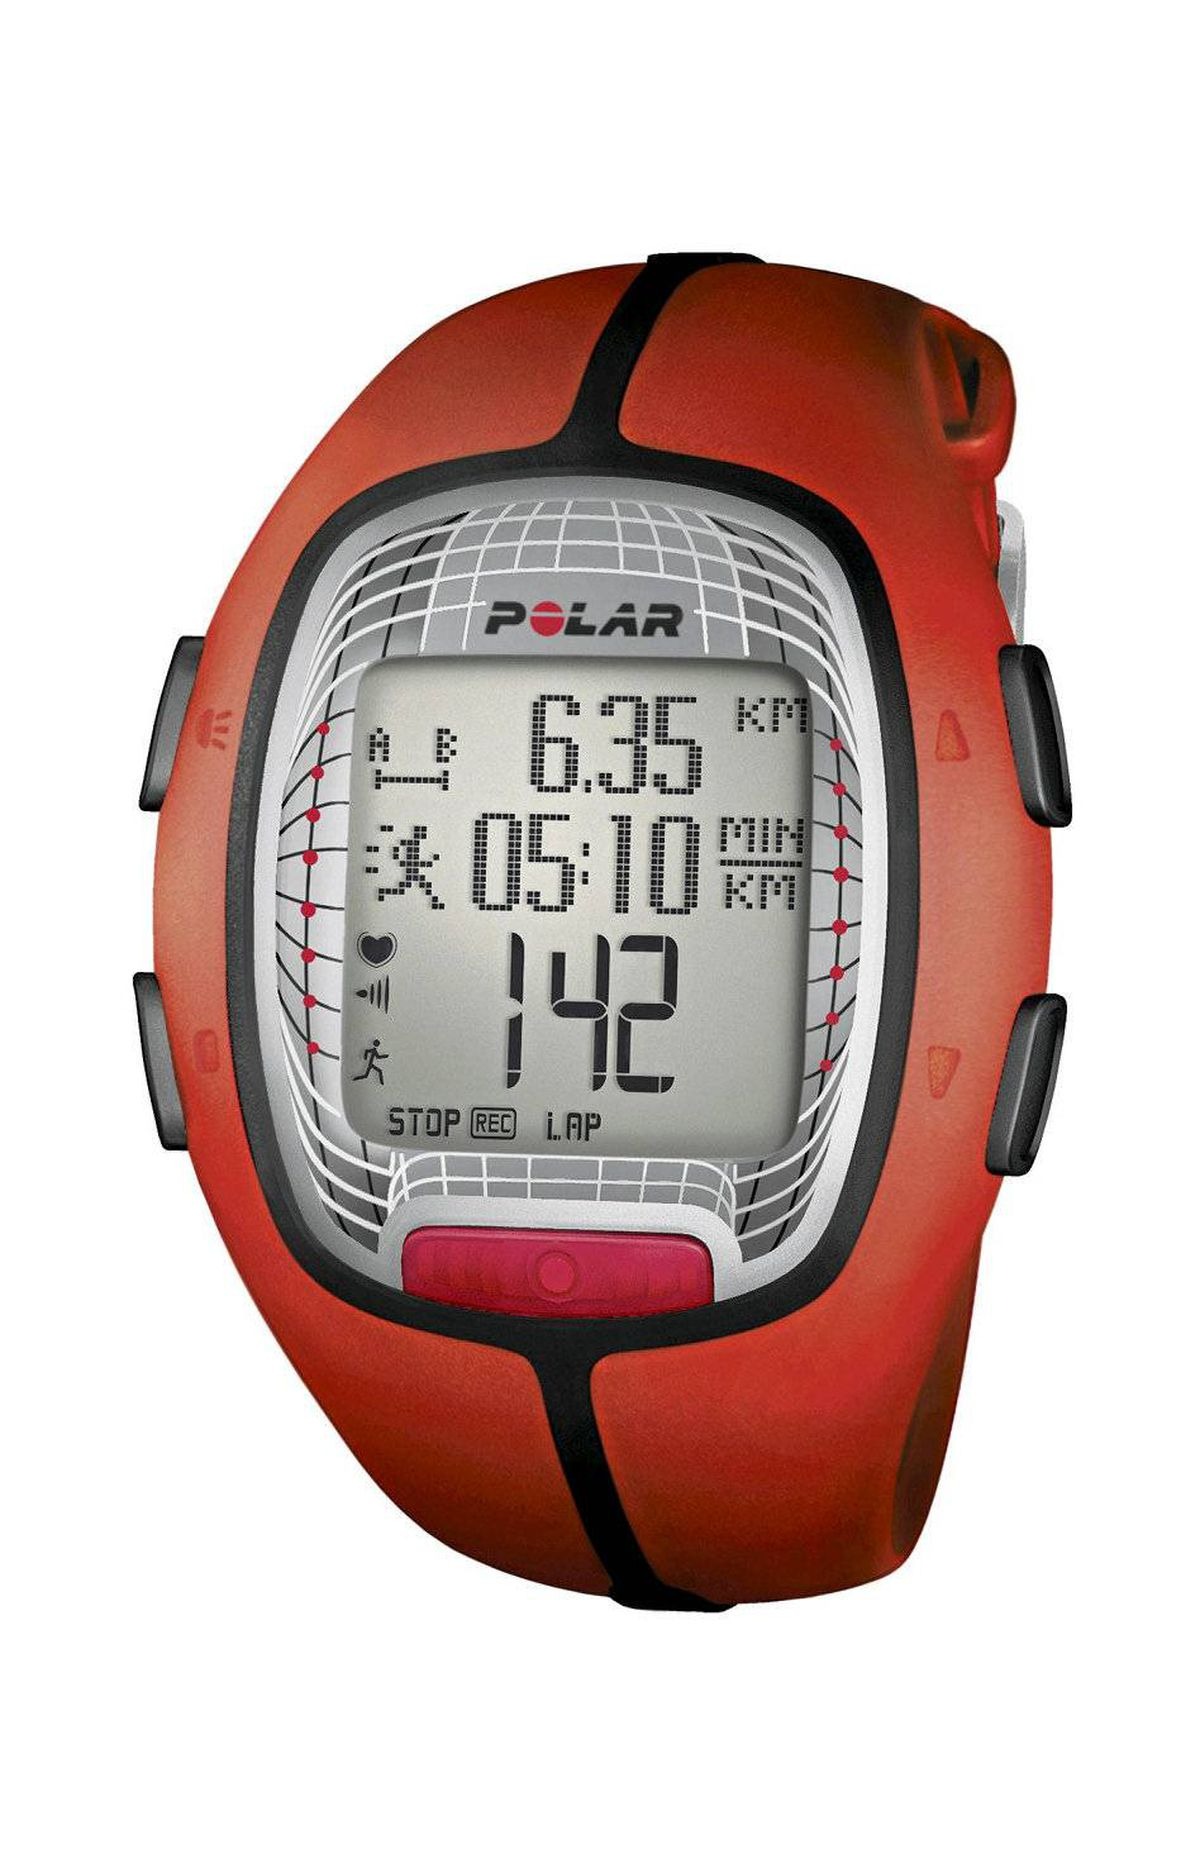 Watch your heart Whether you're in a boot camp or are trying to curb any post-vacation weight gain, Polar's RS300X will let you know how you're doing. This savvy heart-rate monitor/watch is ideal for day-to-day use, calculating target training zones, calories burned and laps run. $179.99, polarca.com